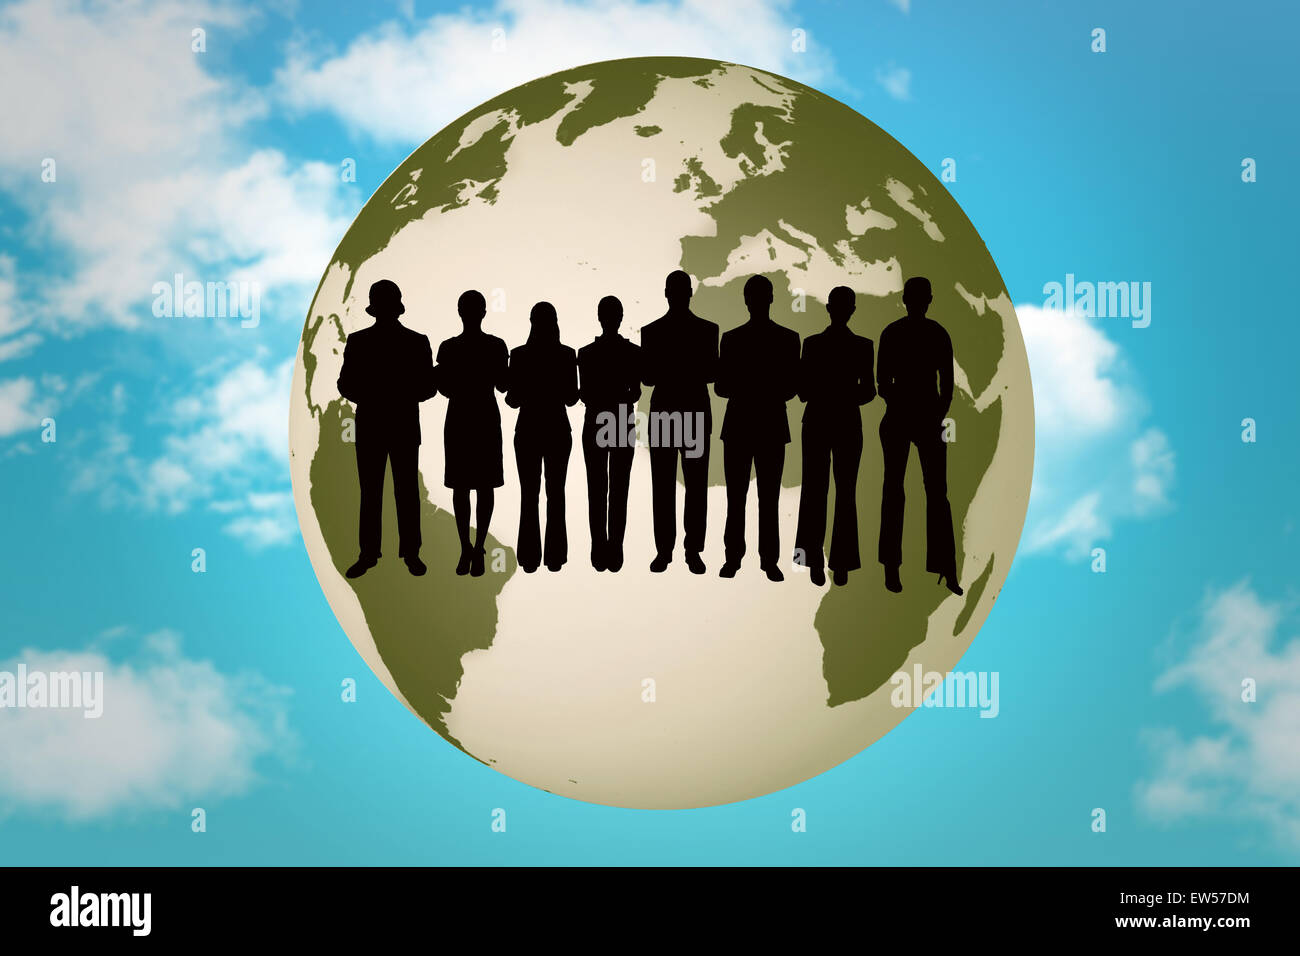 Image composite de silhouette of business people in a row Photo Stock